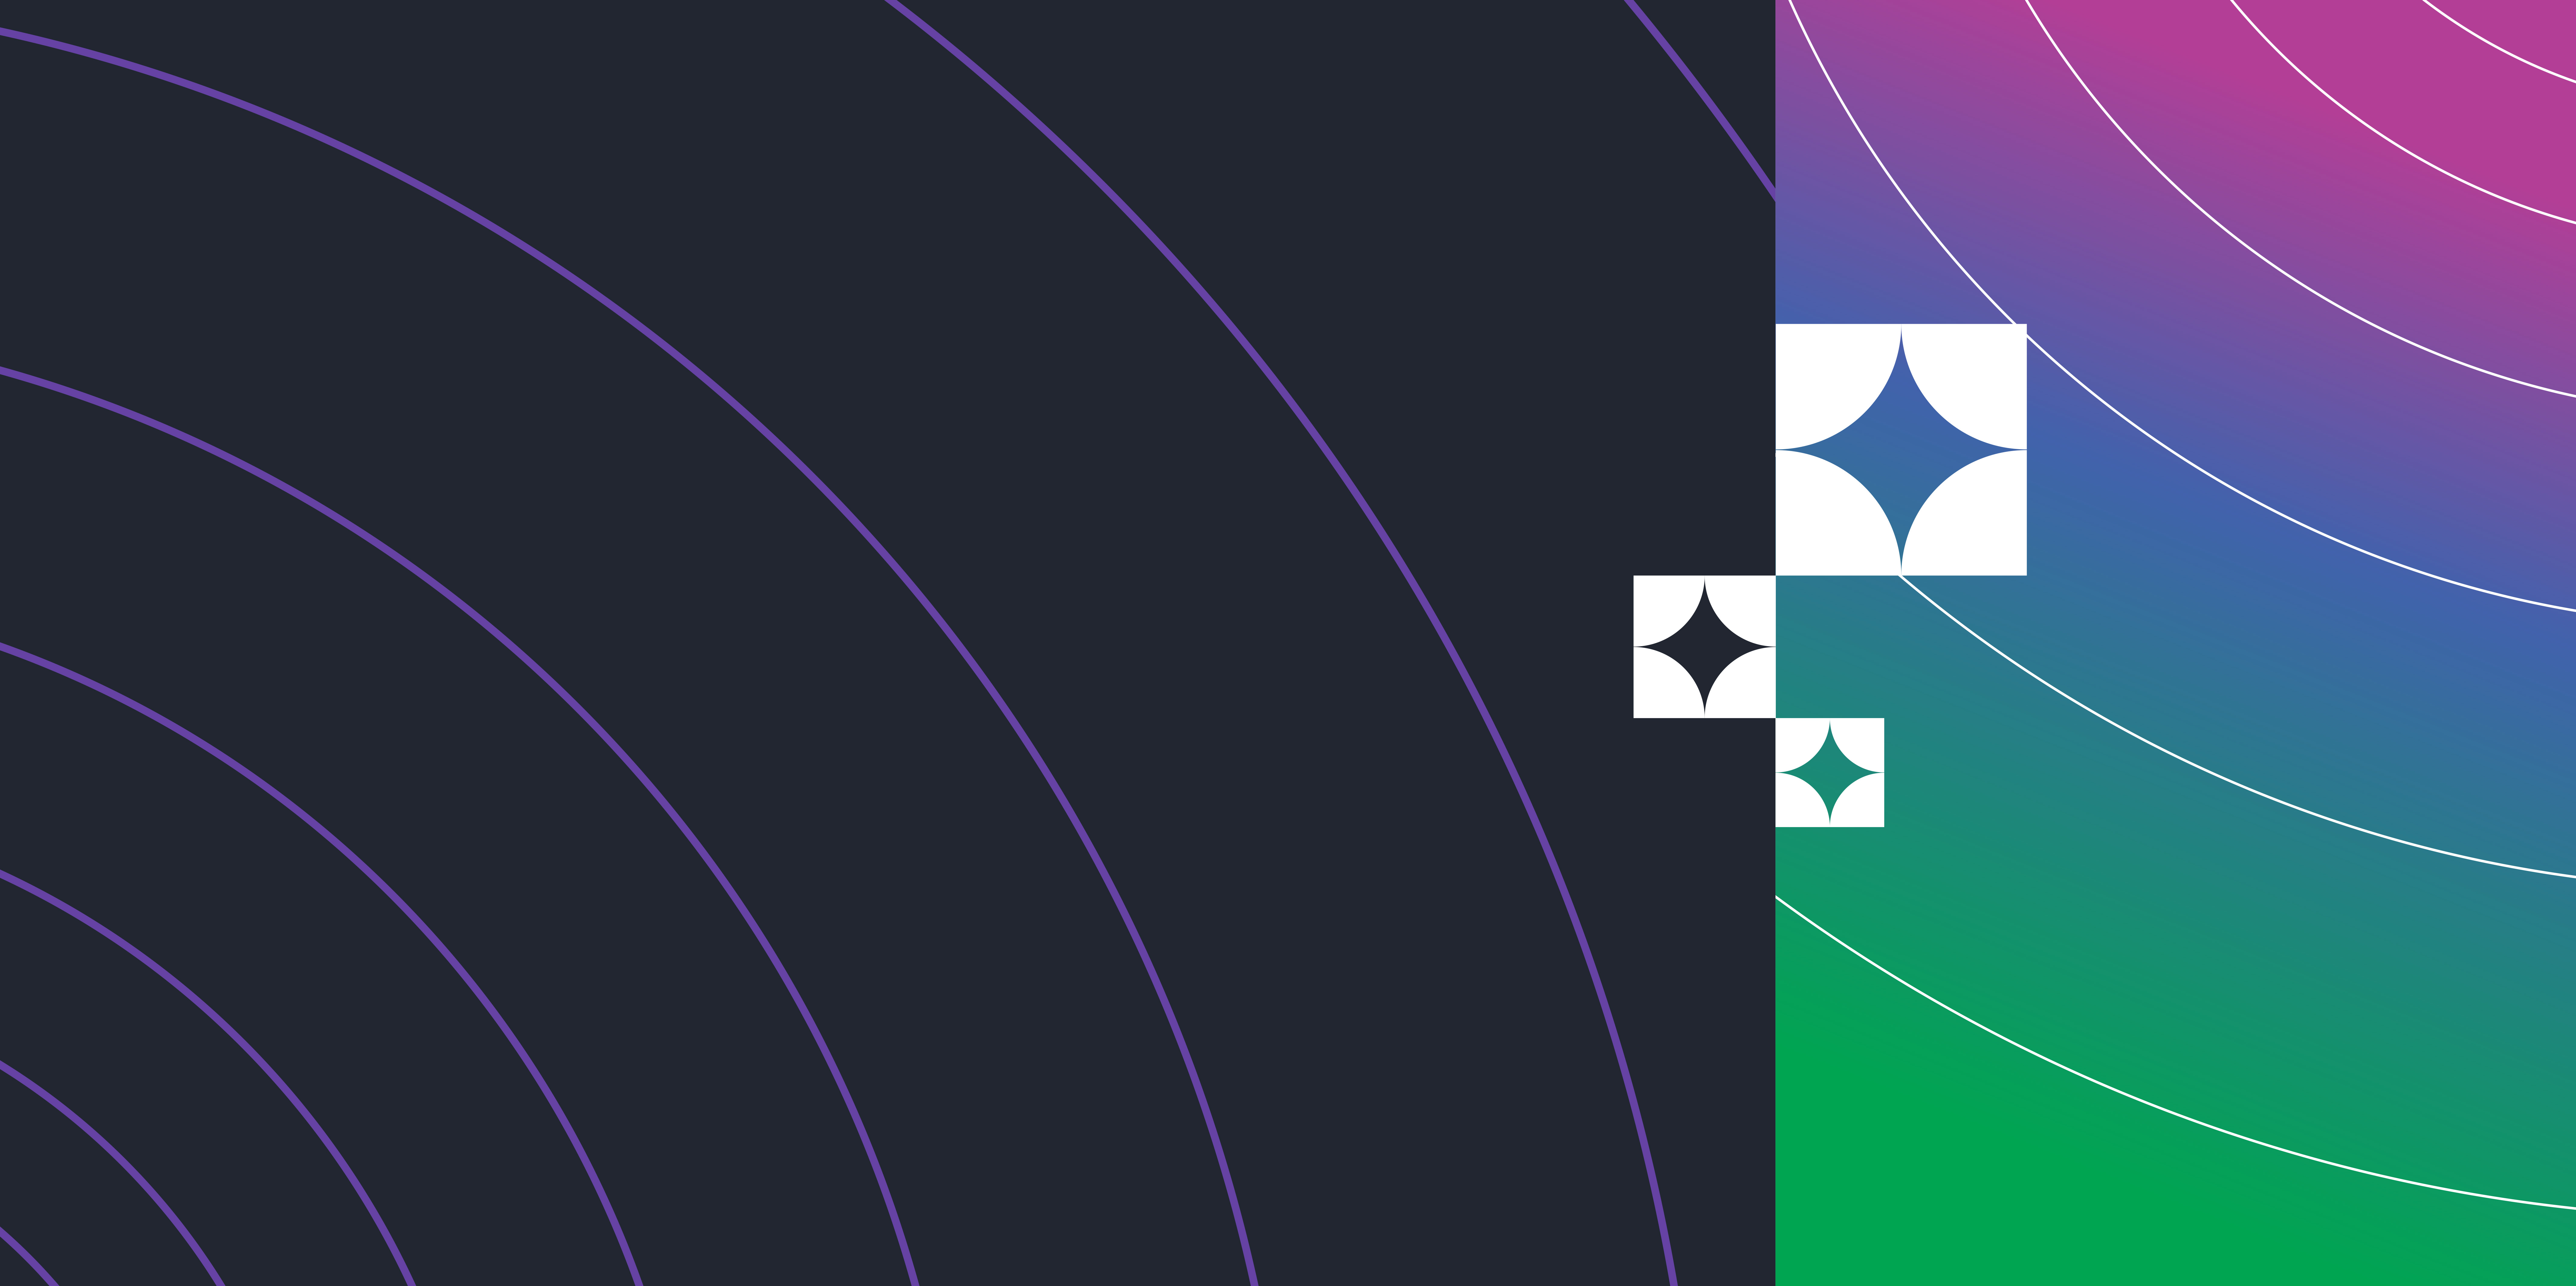 Abstract graphic with three quarters of the image on a black background with curved lines increasing in distance from the bottom left to top right and the right quarter of the image a gradient of green to blue to pink from the bottom left to top right corner.